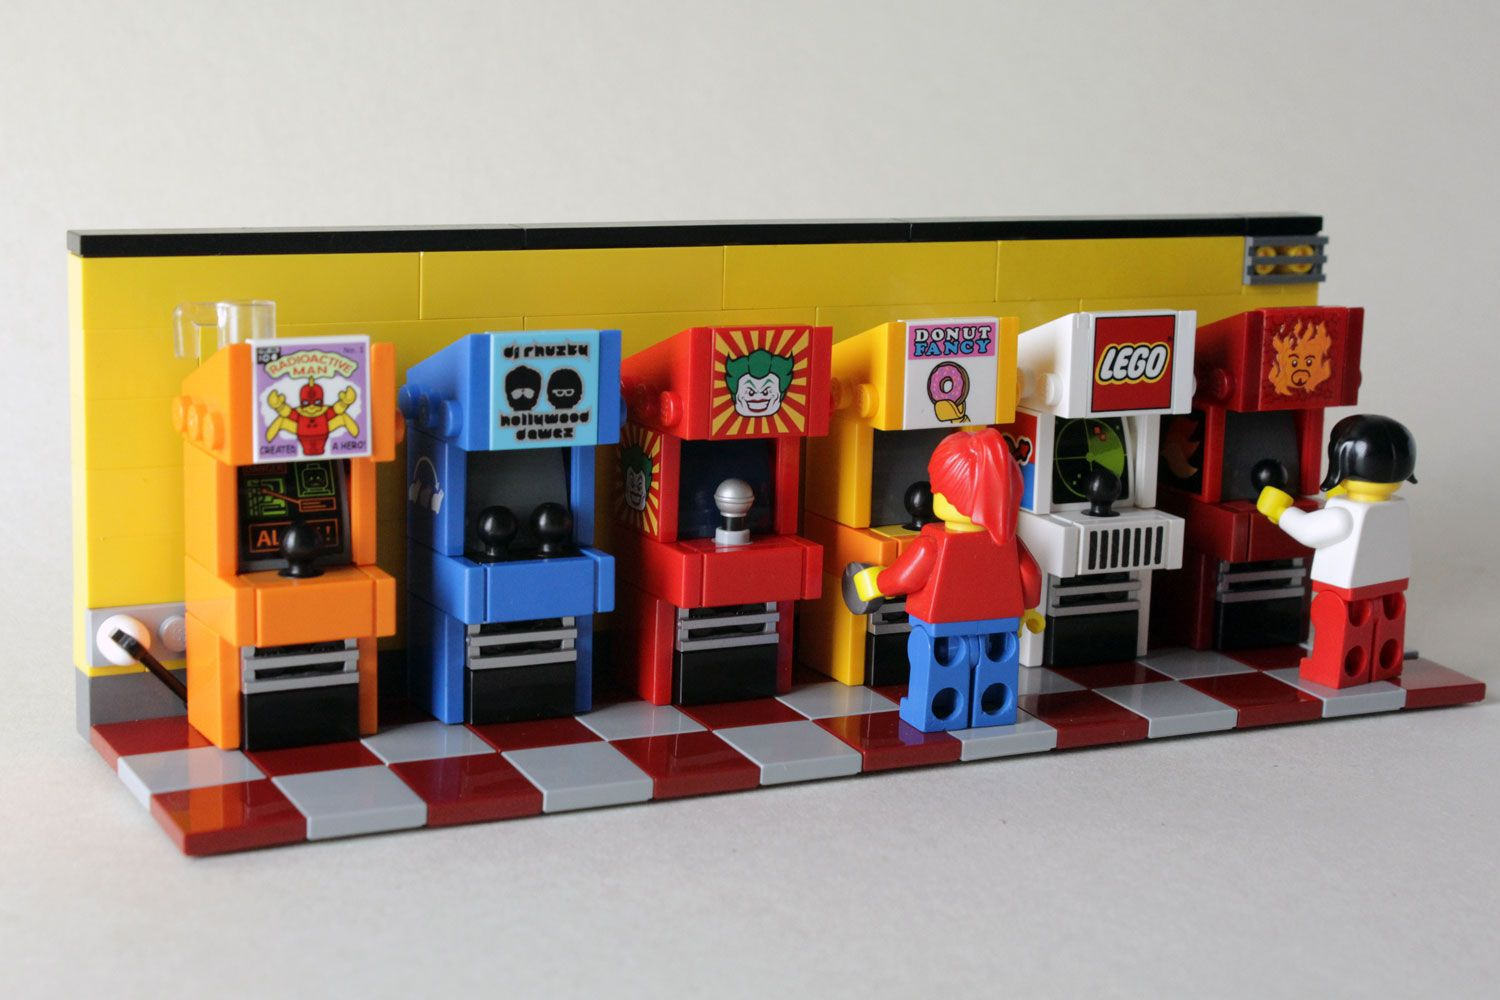 Arcade machines : lego | JJ's Arcade 4/16 Lighting | Lego